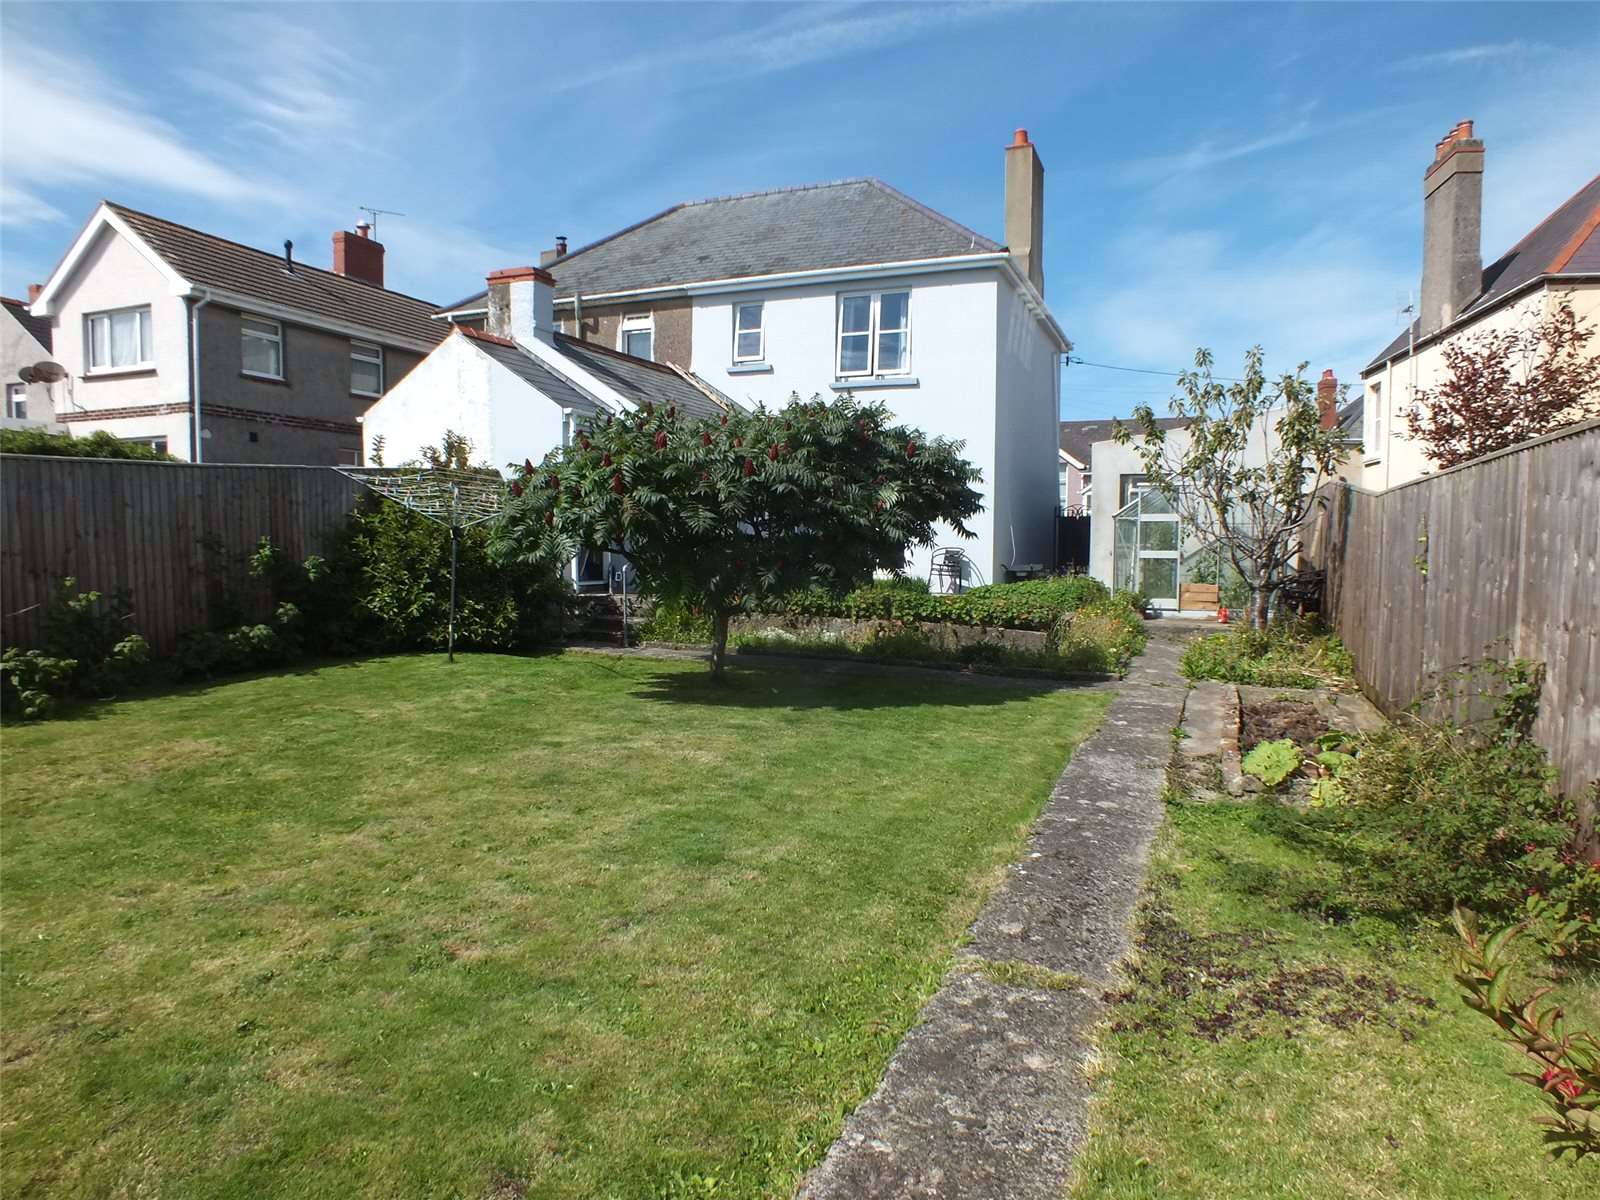 3 Bedrooms Semi Detached House for sale in Yorke Street, Milford Haven, Pembrokeshire